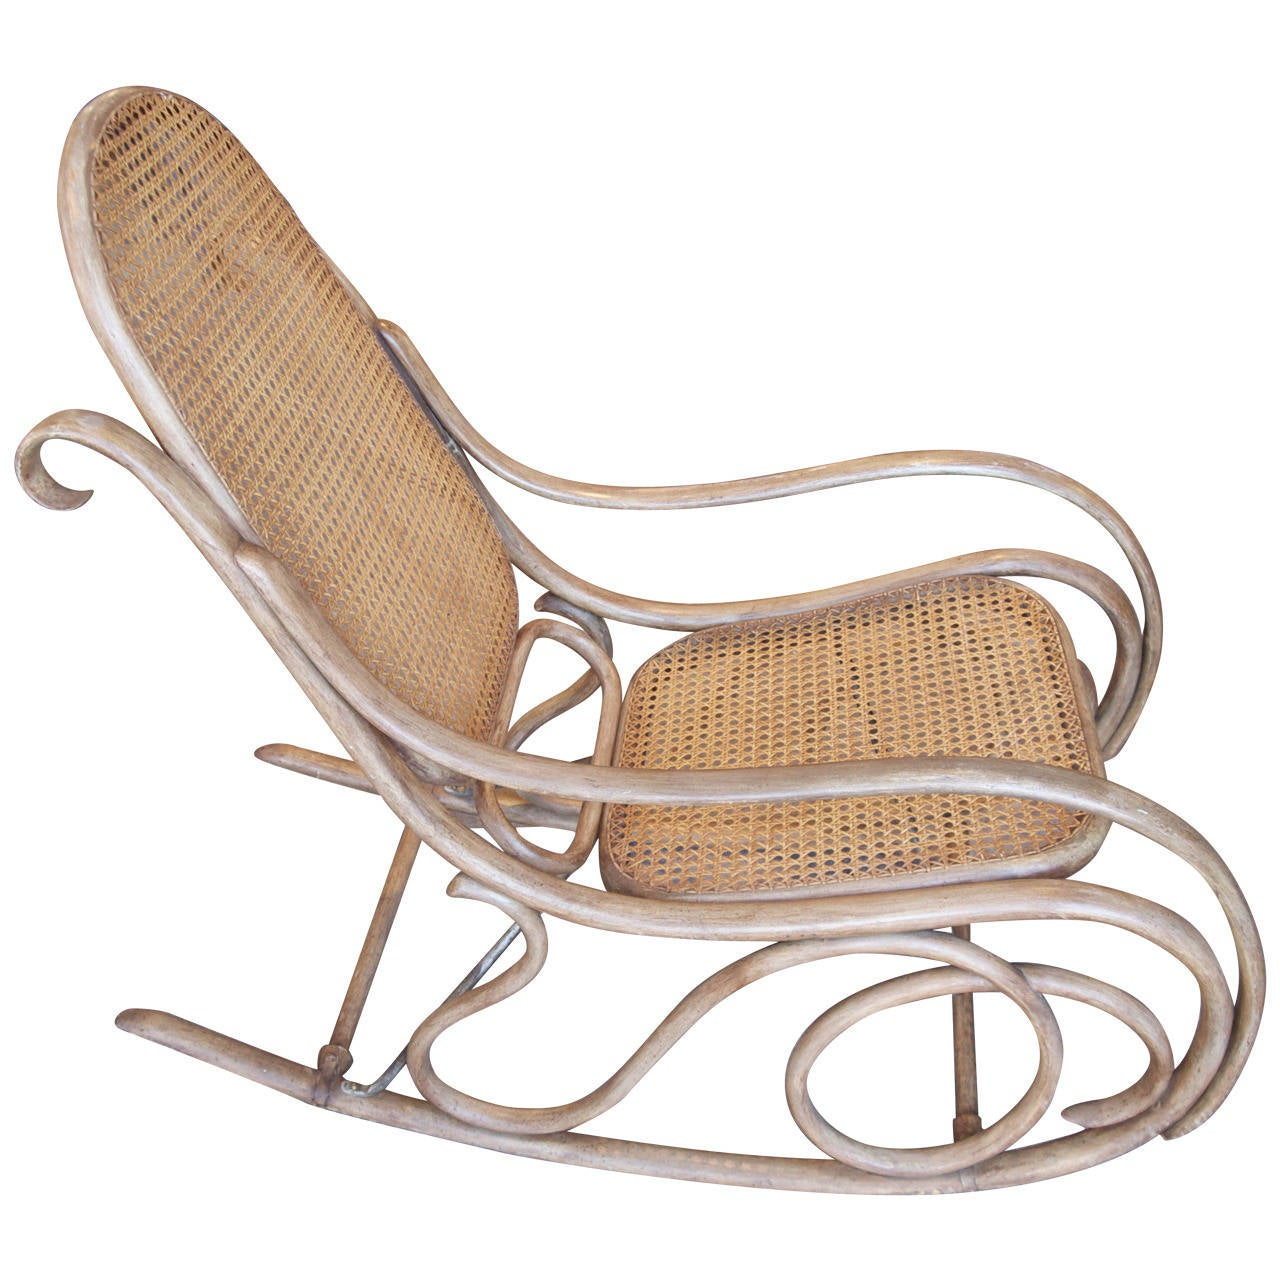 Bentwood rocking chair value - Thonet Bentwood And Caned Rocking Chair 1